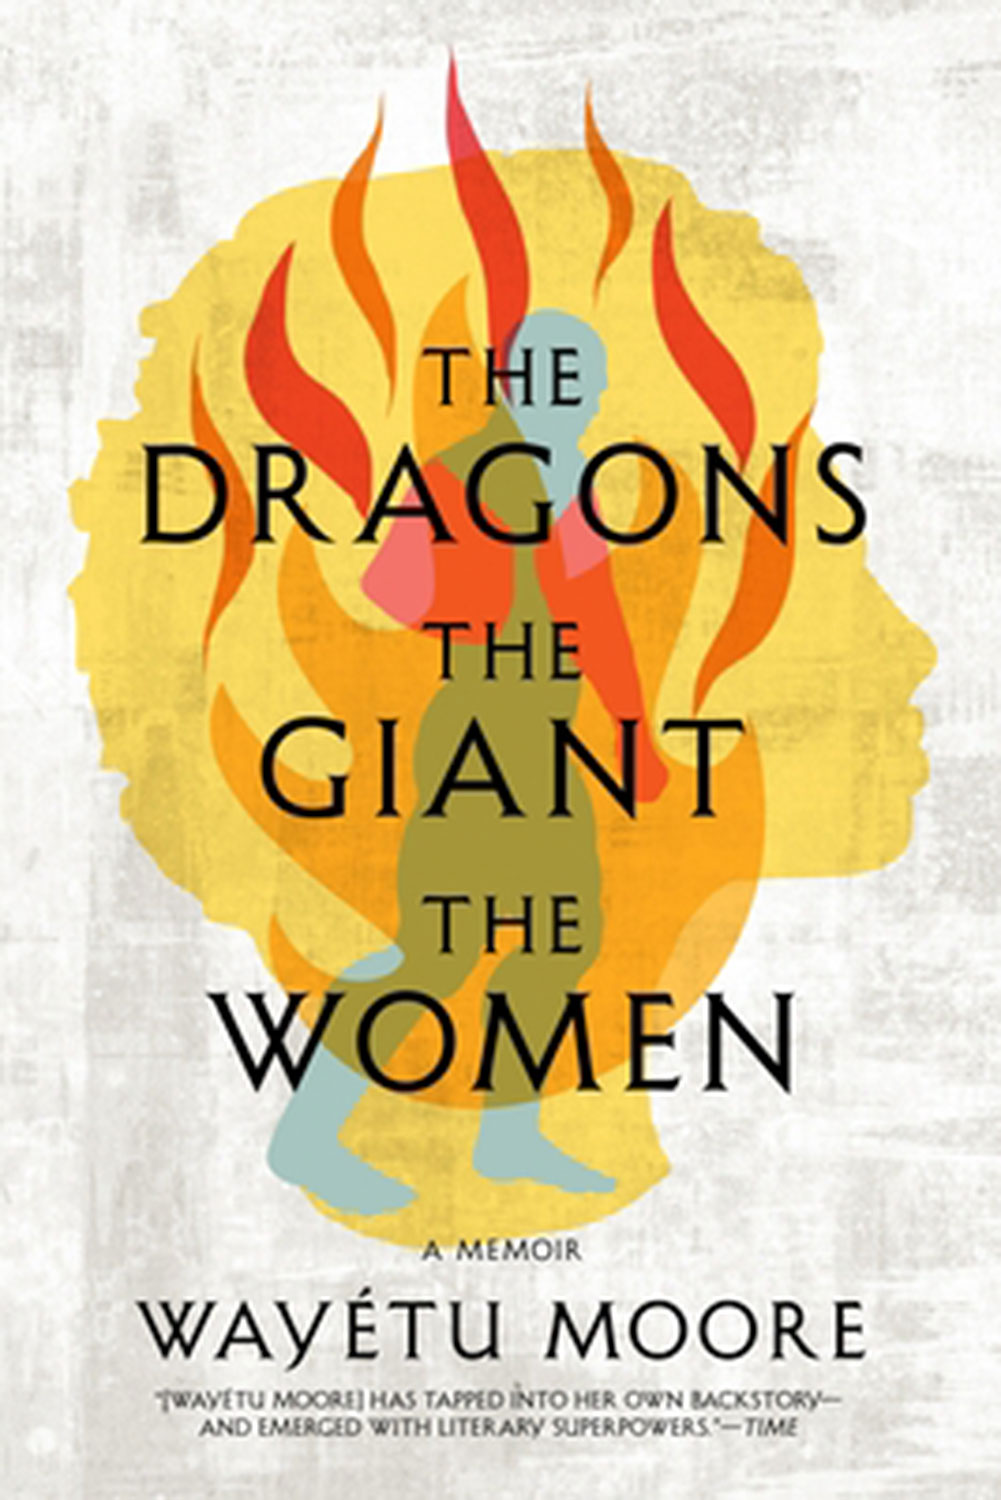 The Dragons, the Giant, the Women by Wayetu Moore